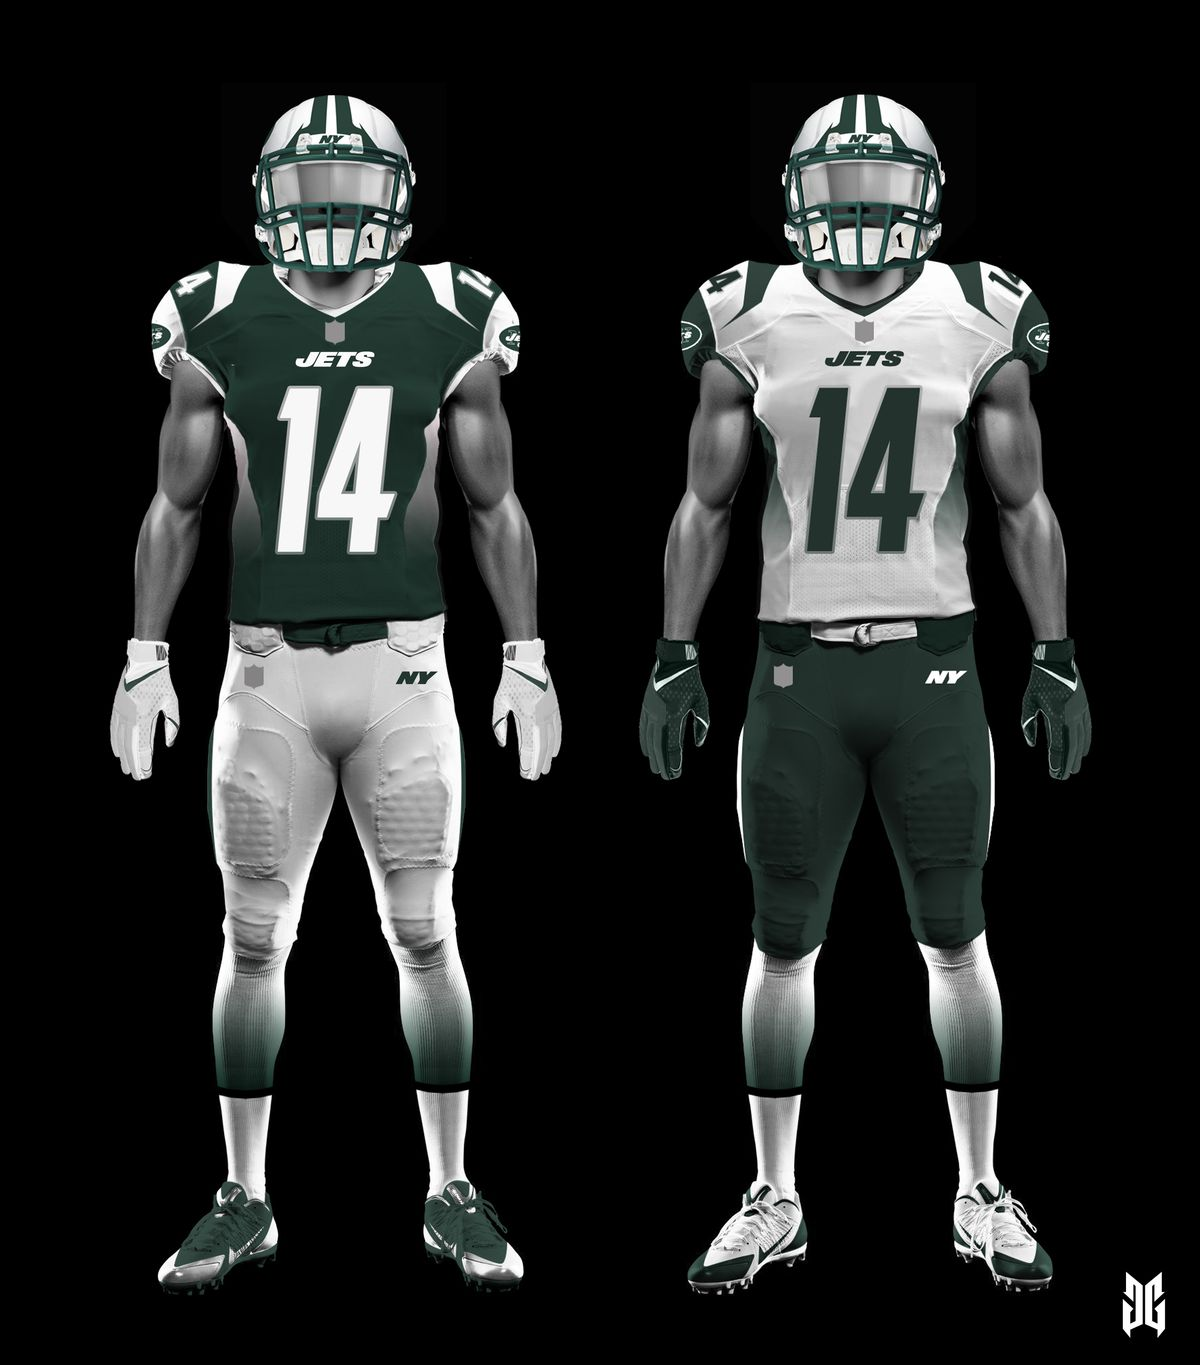 New Jets uniforms designed by fans of the team Gang Green Nation